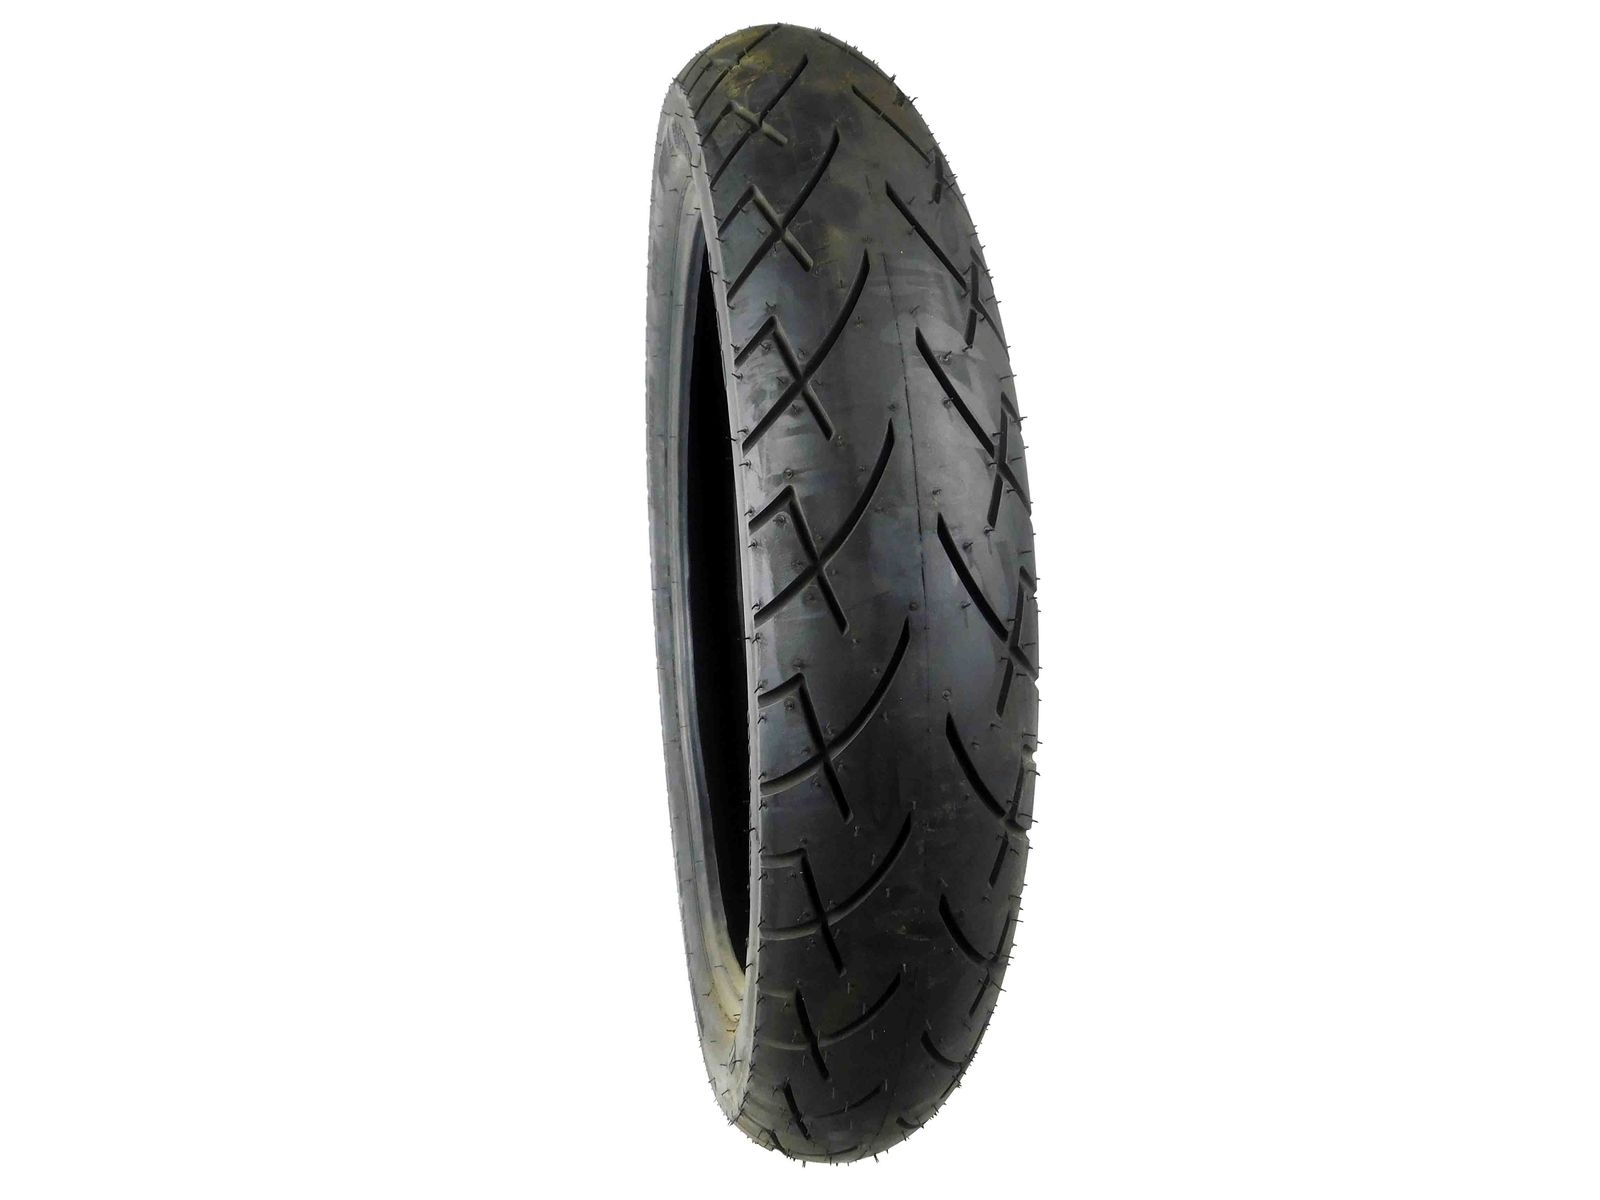 Full-Bore-110-90-19-Front-140-90-16-Rear-Set-Cruiser-Motorcycle-Tires-image-2